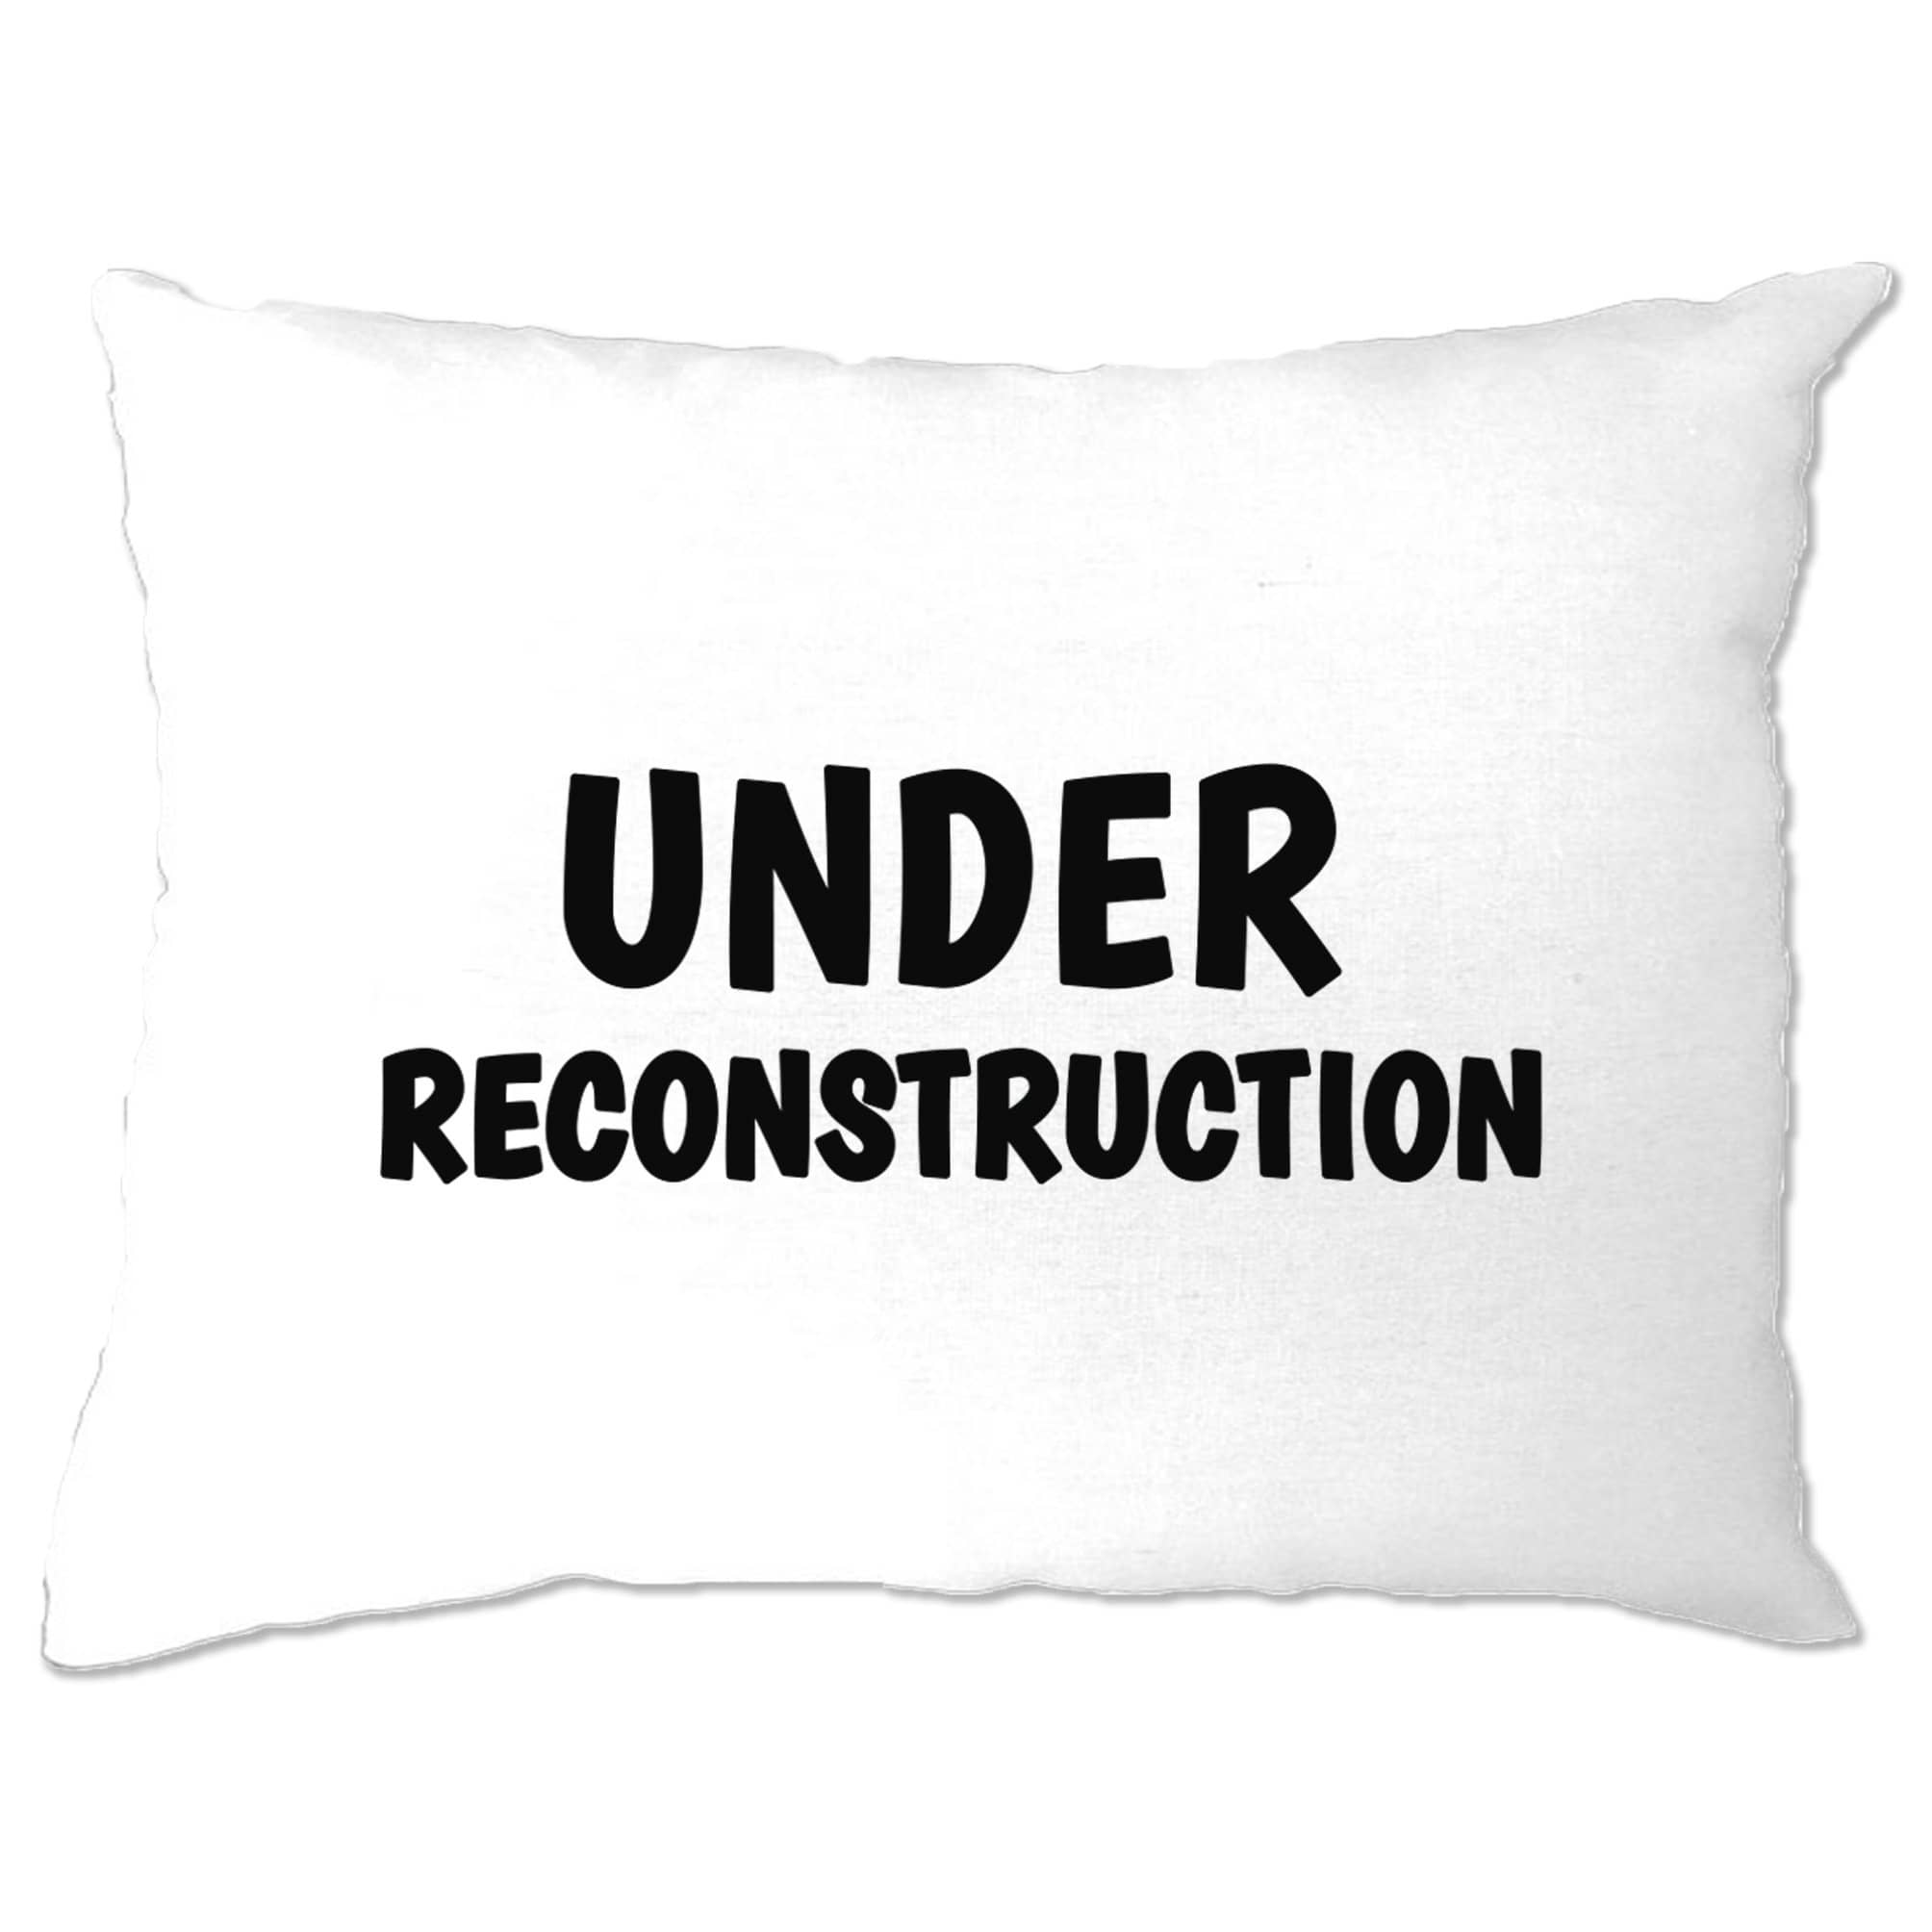 Novelty Gym Pillow Case Under Reconstruction Slogan